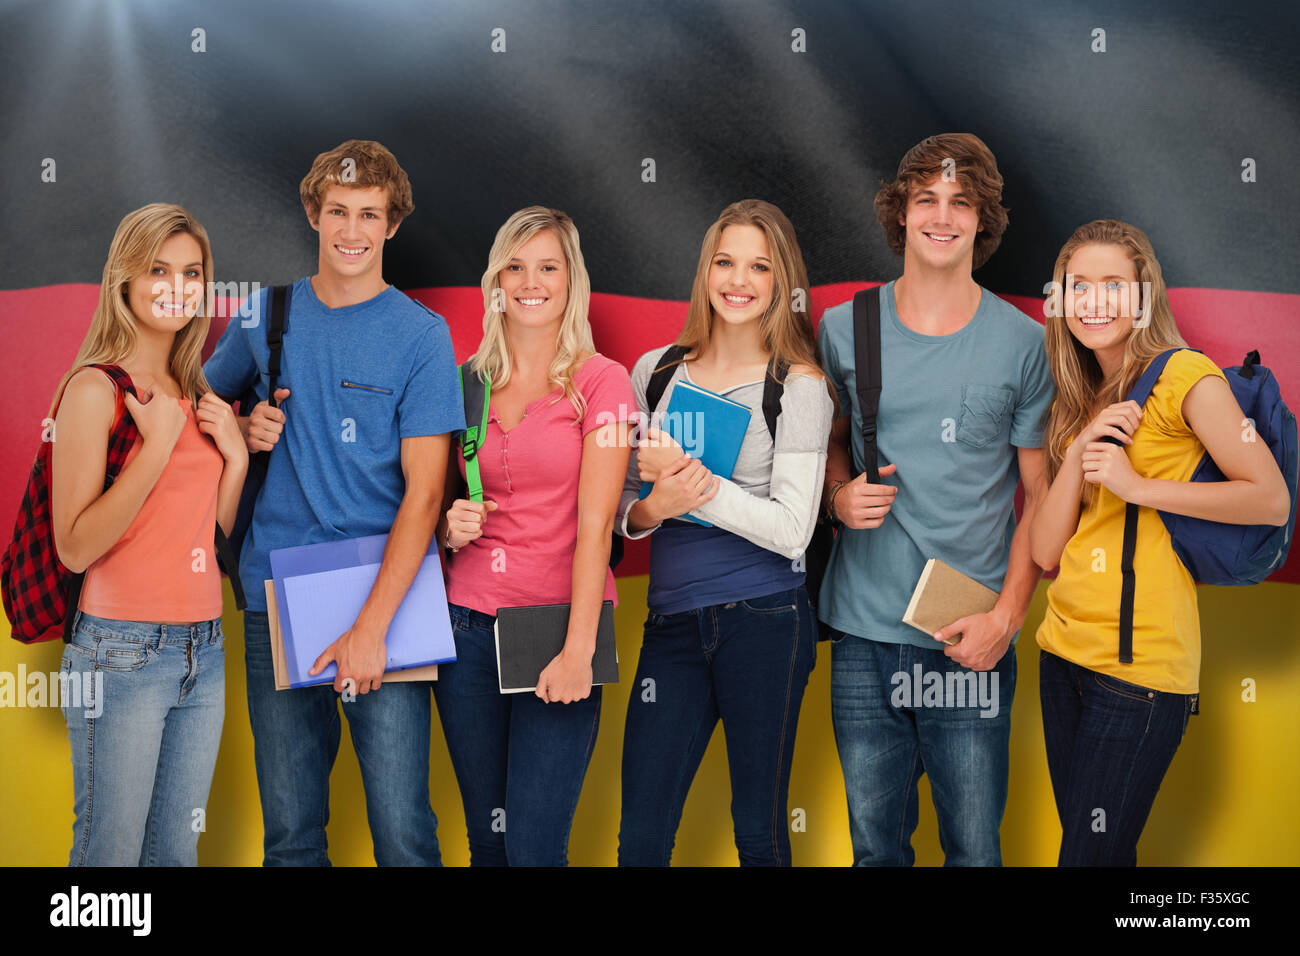 Composite image of smiling students all geared up for college - Stock Image